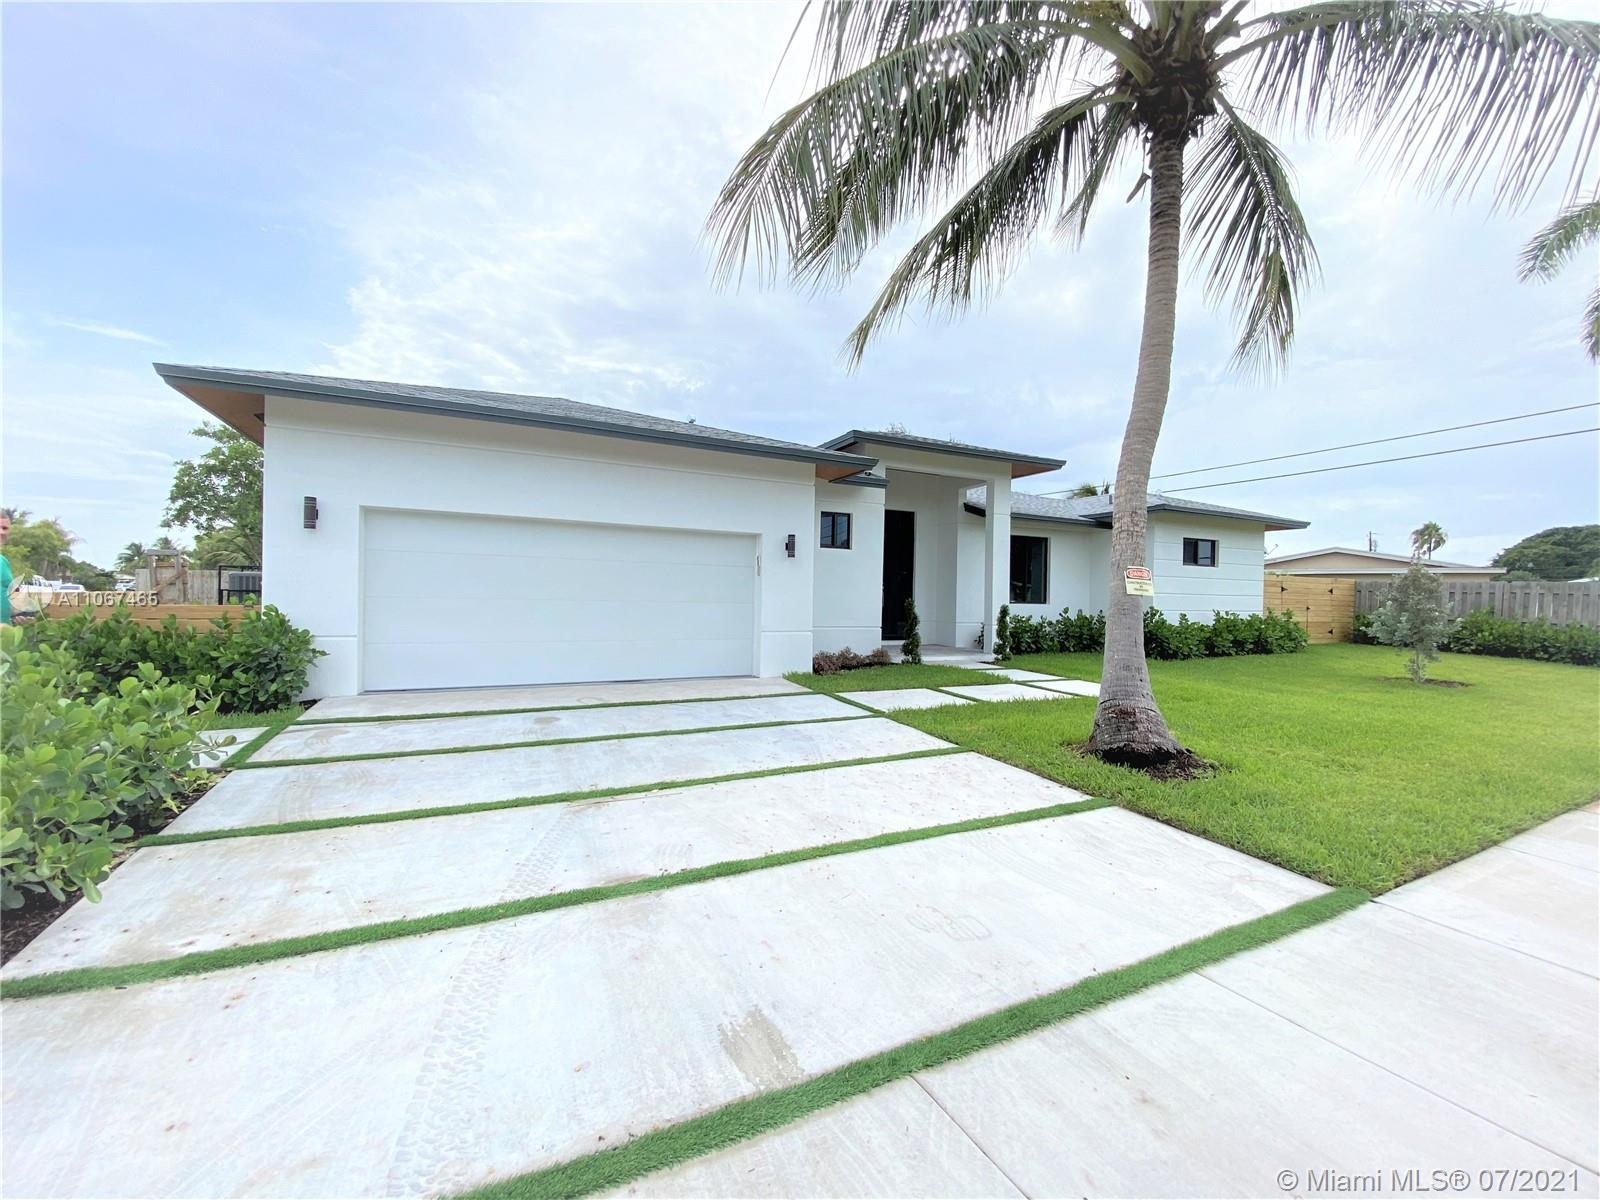 BRAND NEW CONSTRUCTION! New built 2021 home with 4 bedrooms and 2.5 baths to be finished by mid-Augu